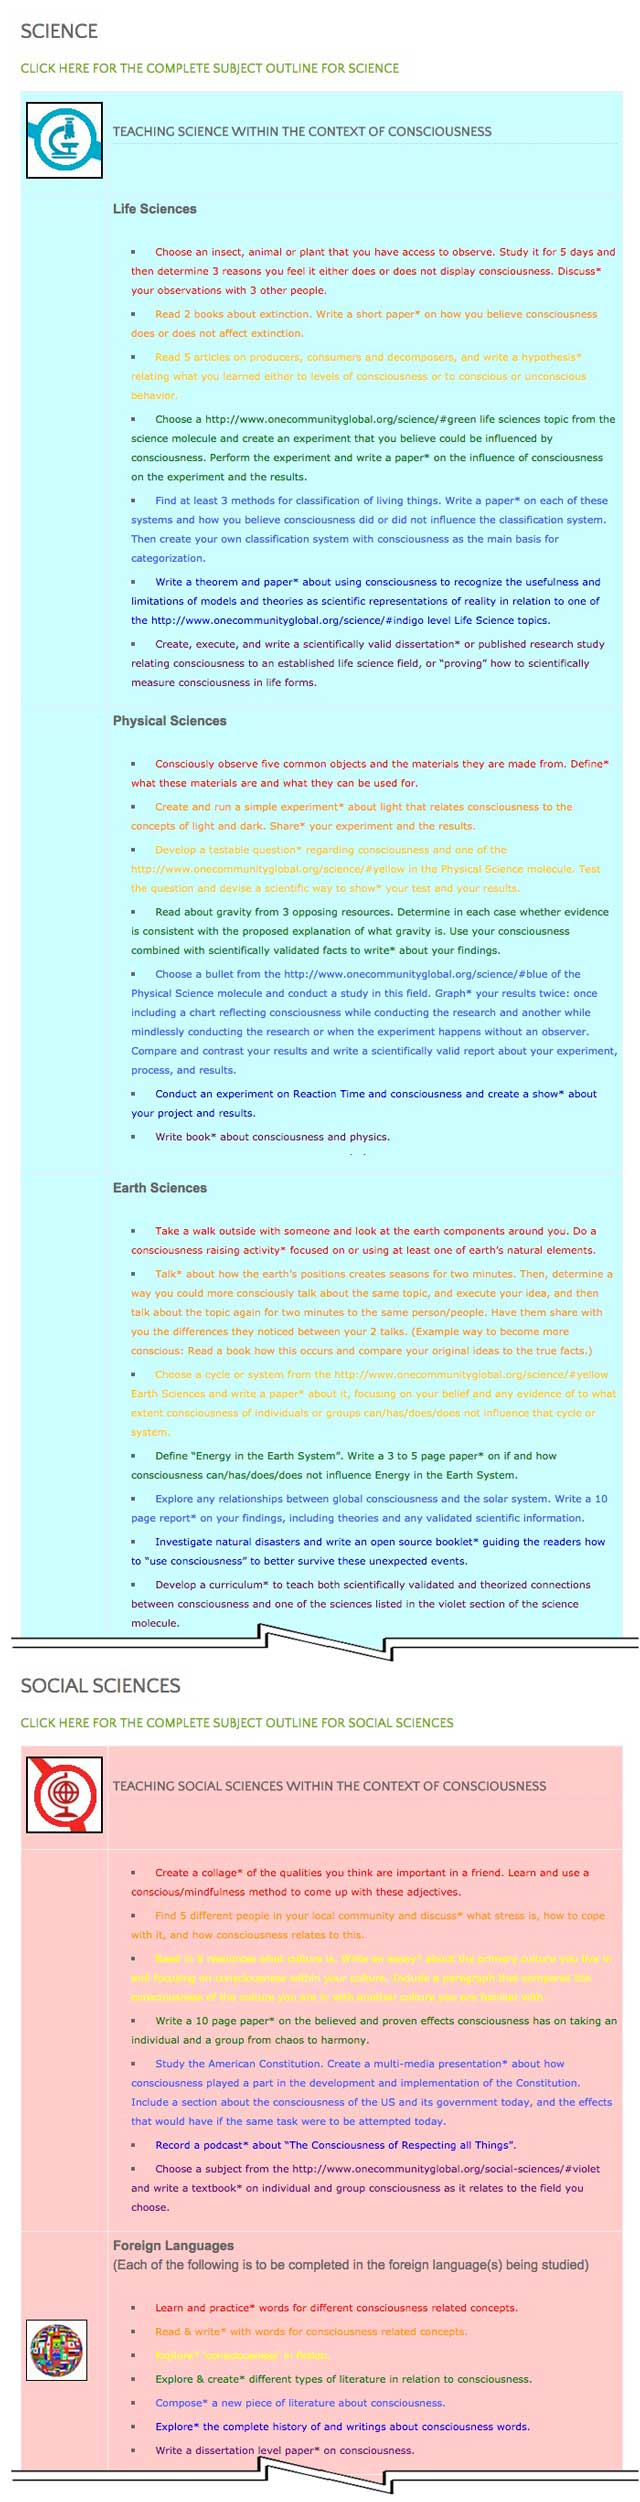 """This last week the core team transferred the third 25% of the written content for the Consciousness Lesson Plan to the website, as you see here. This lesson plan purposed to teach all subjects, to all learning levels, in any learning environment, using the central theme of """"Consciousness"""" is now 75% completed on our website."""